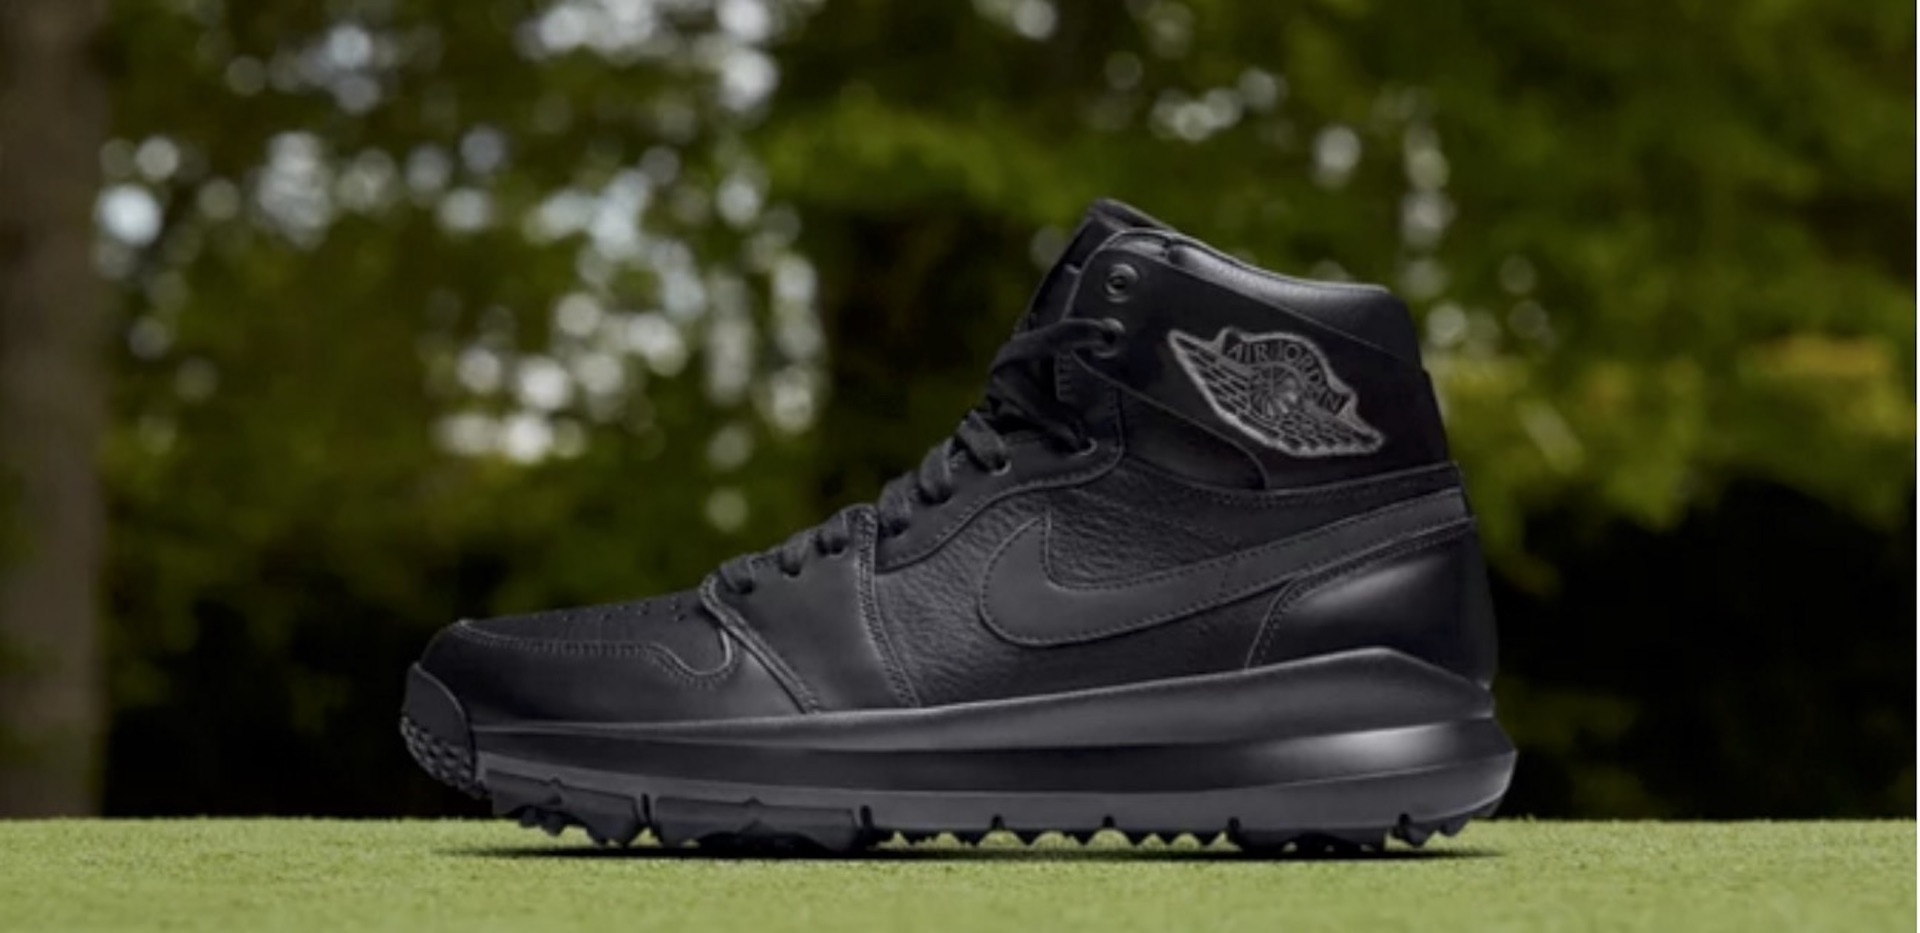 Nike release new all black Air Jordan golf shoe